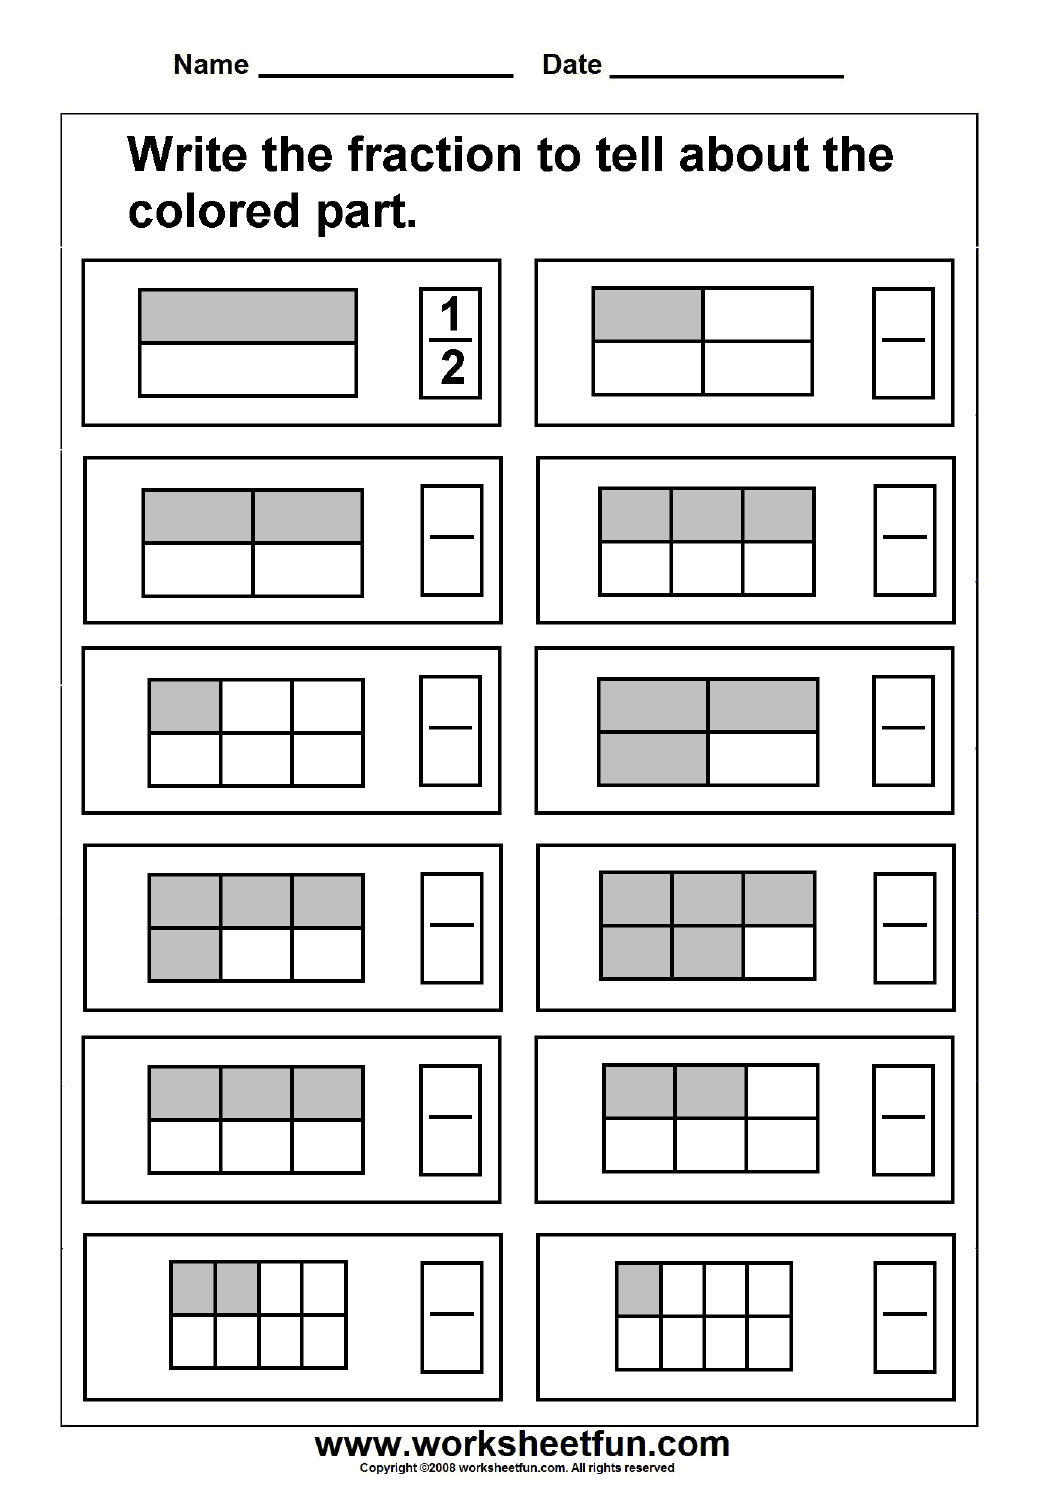 Fraction FREE Printable Worksheets Worksheetfun – Matching Equivalent Fractions Worksheet